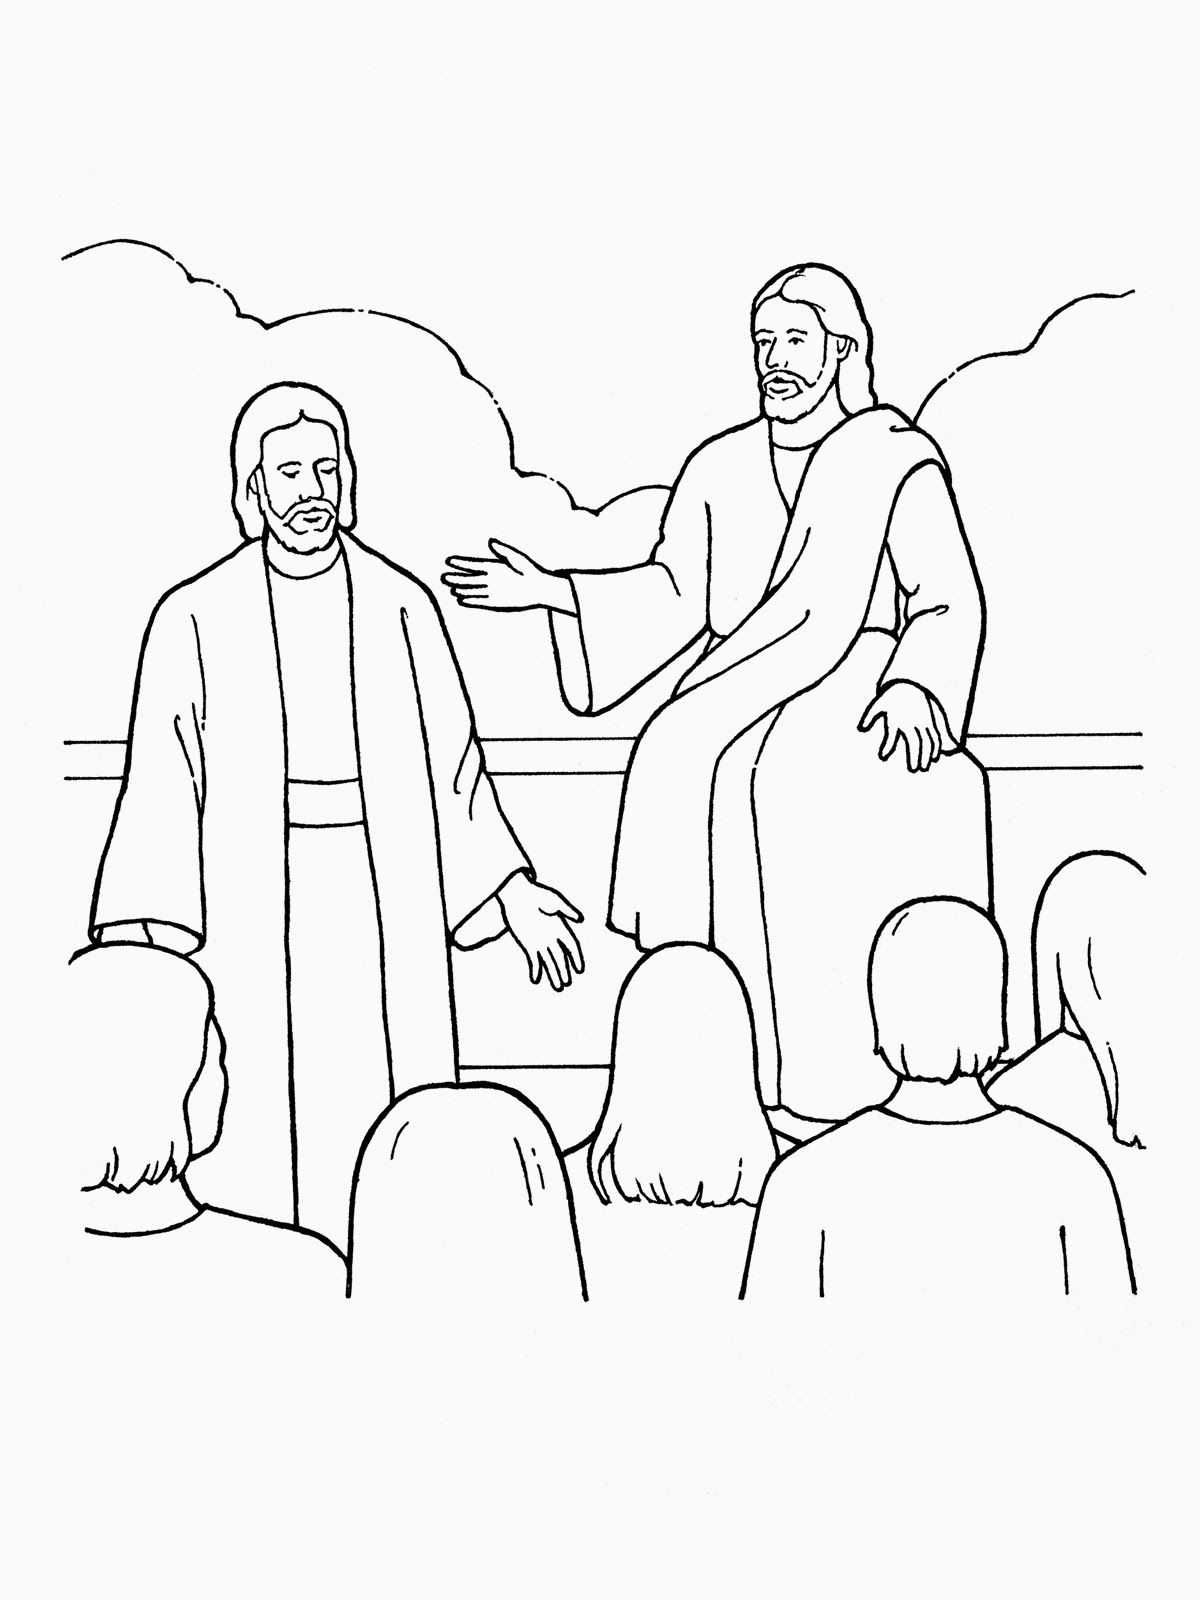 January Sharing Time WK 1 Jesus coloring pages, Bible